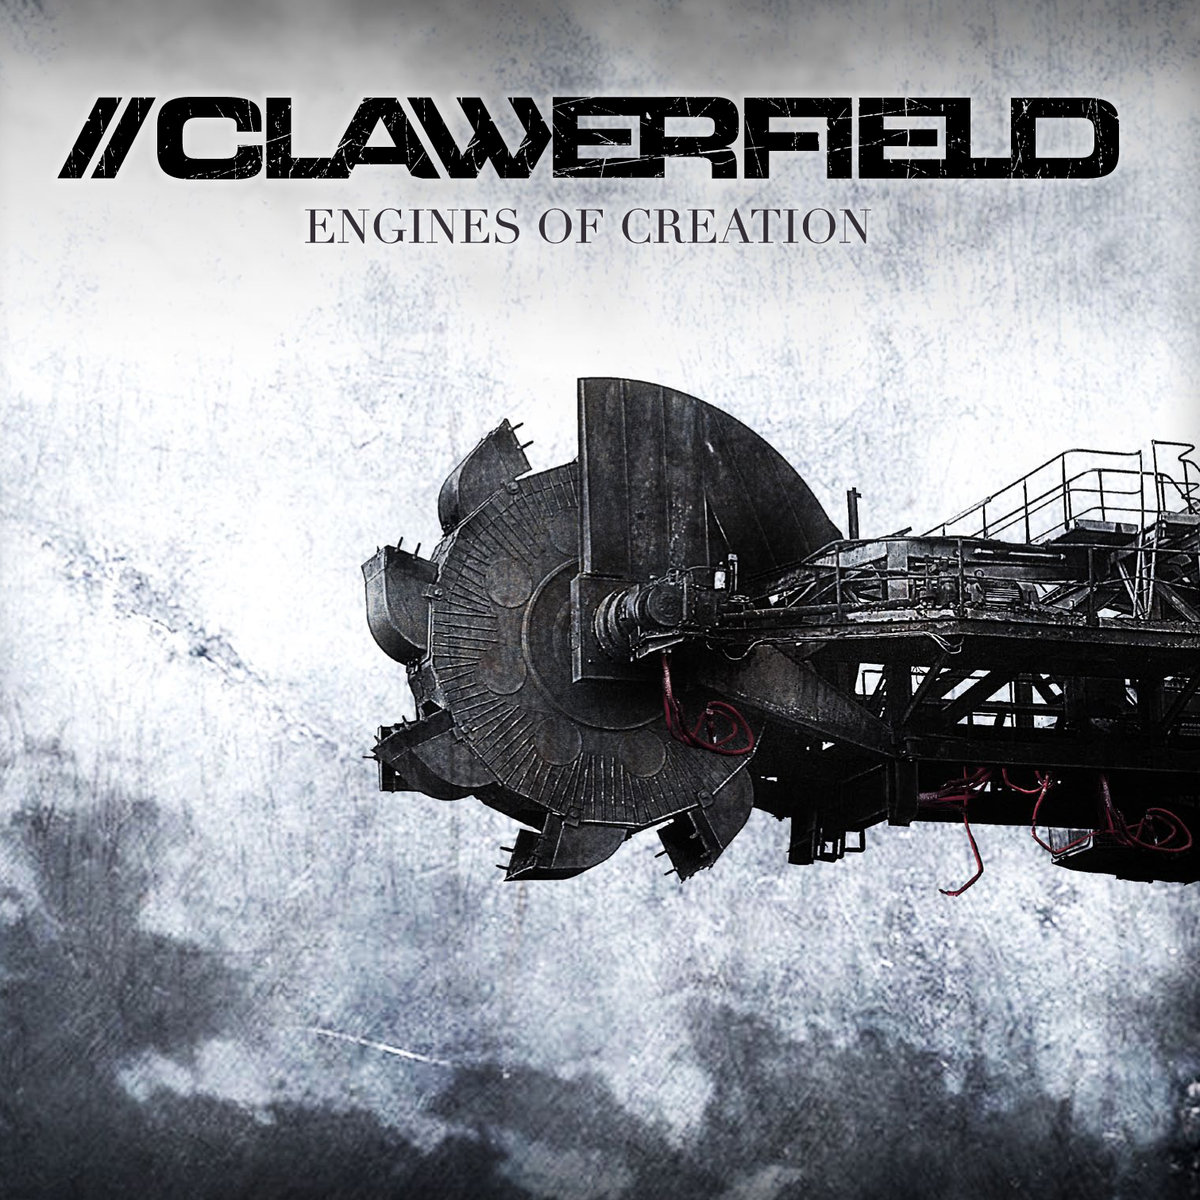 Clawerfield: Engines of Creation